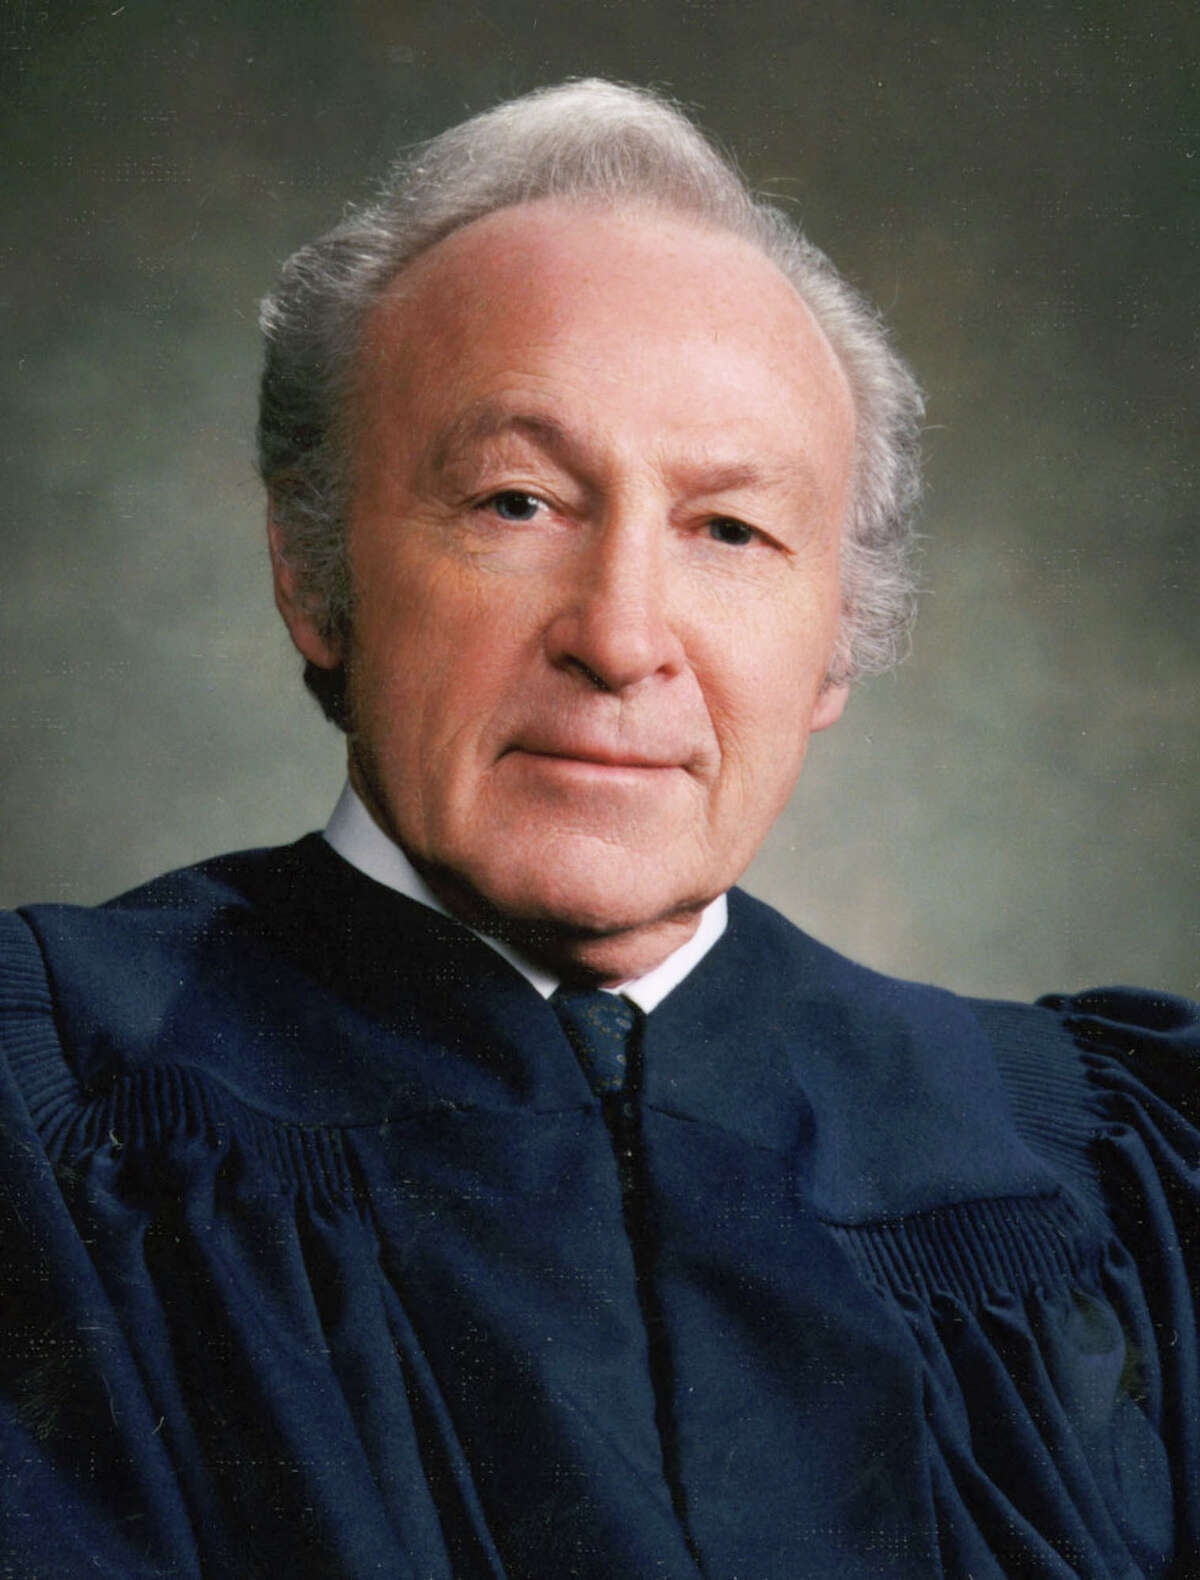 U.S. District Judge Alan McDonald mocked the dialect of a black defendant in a court note.